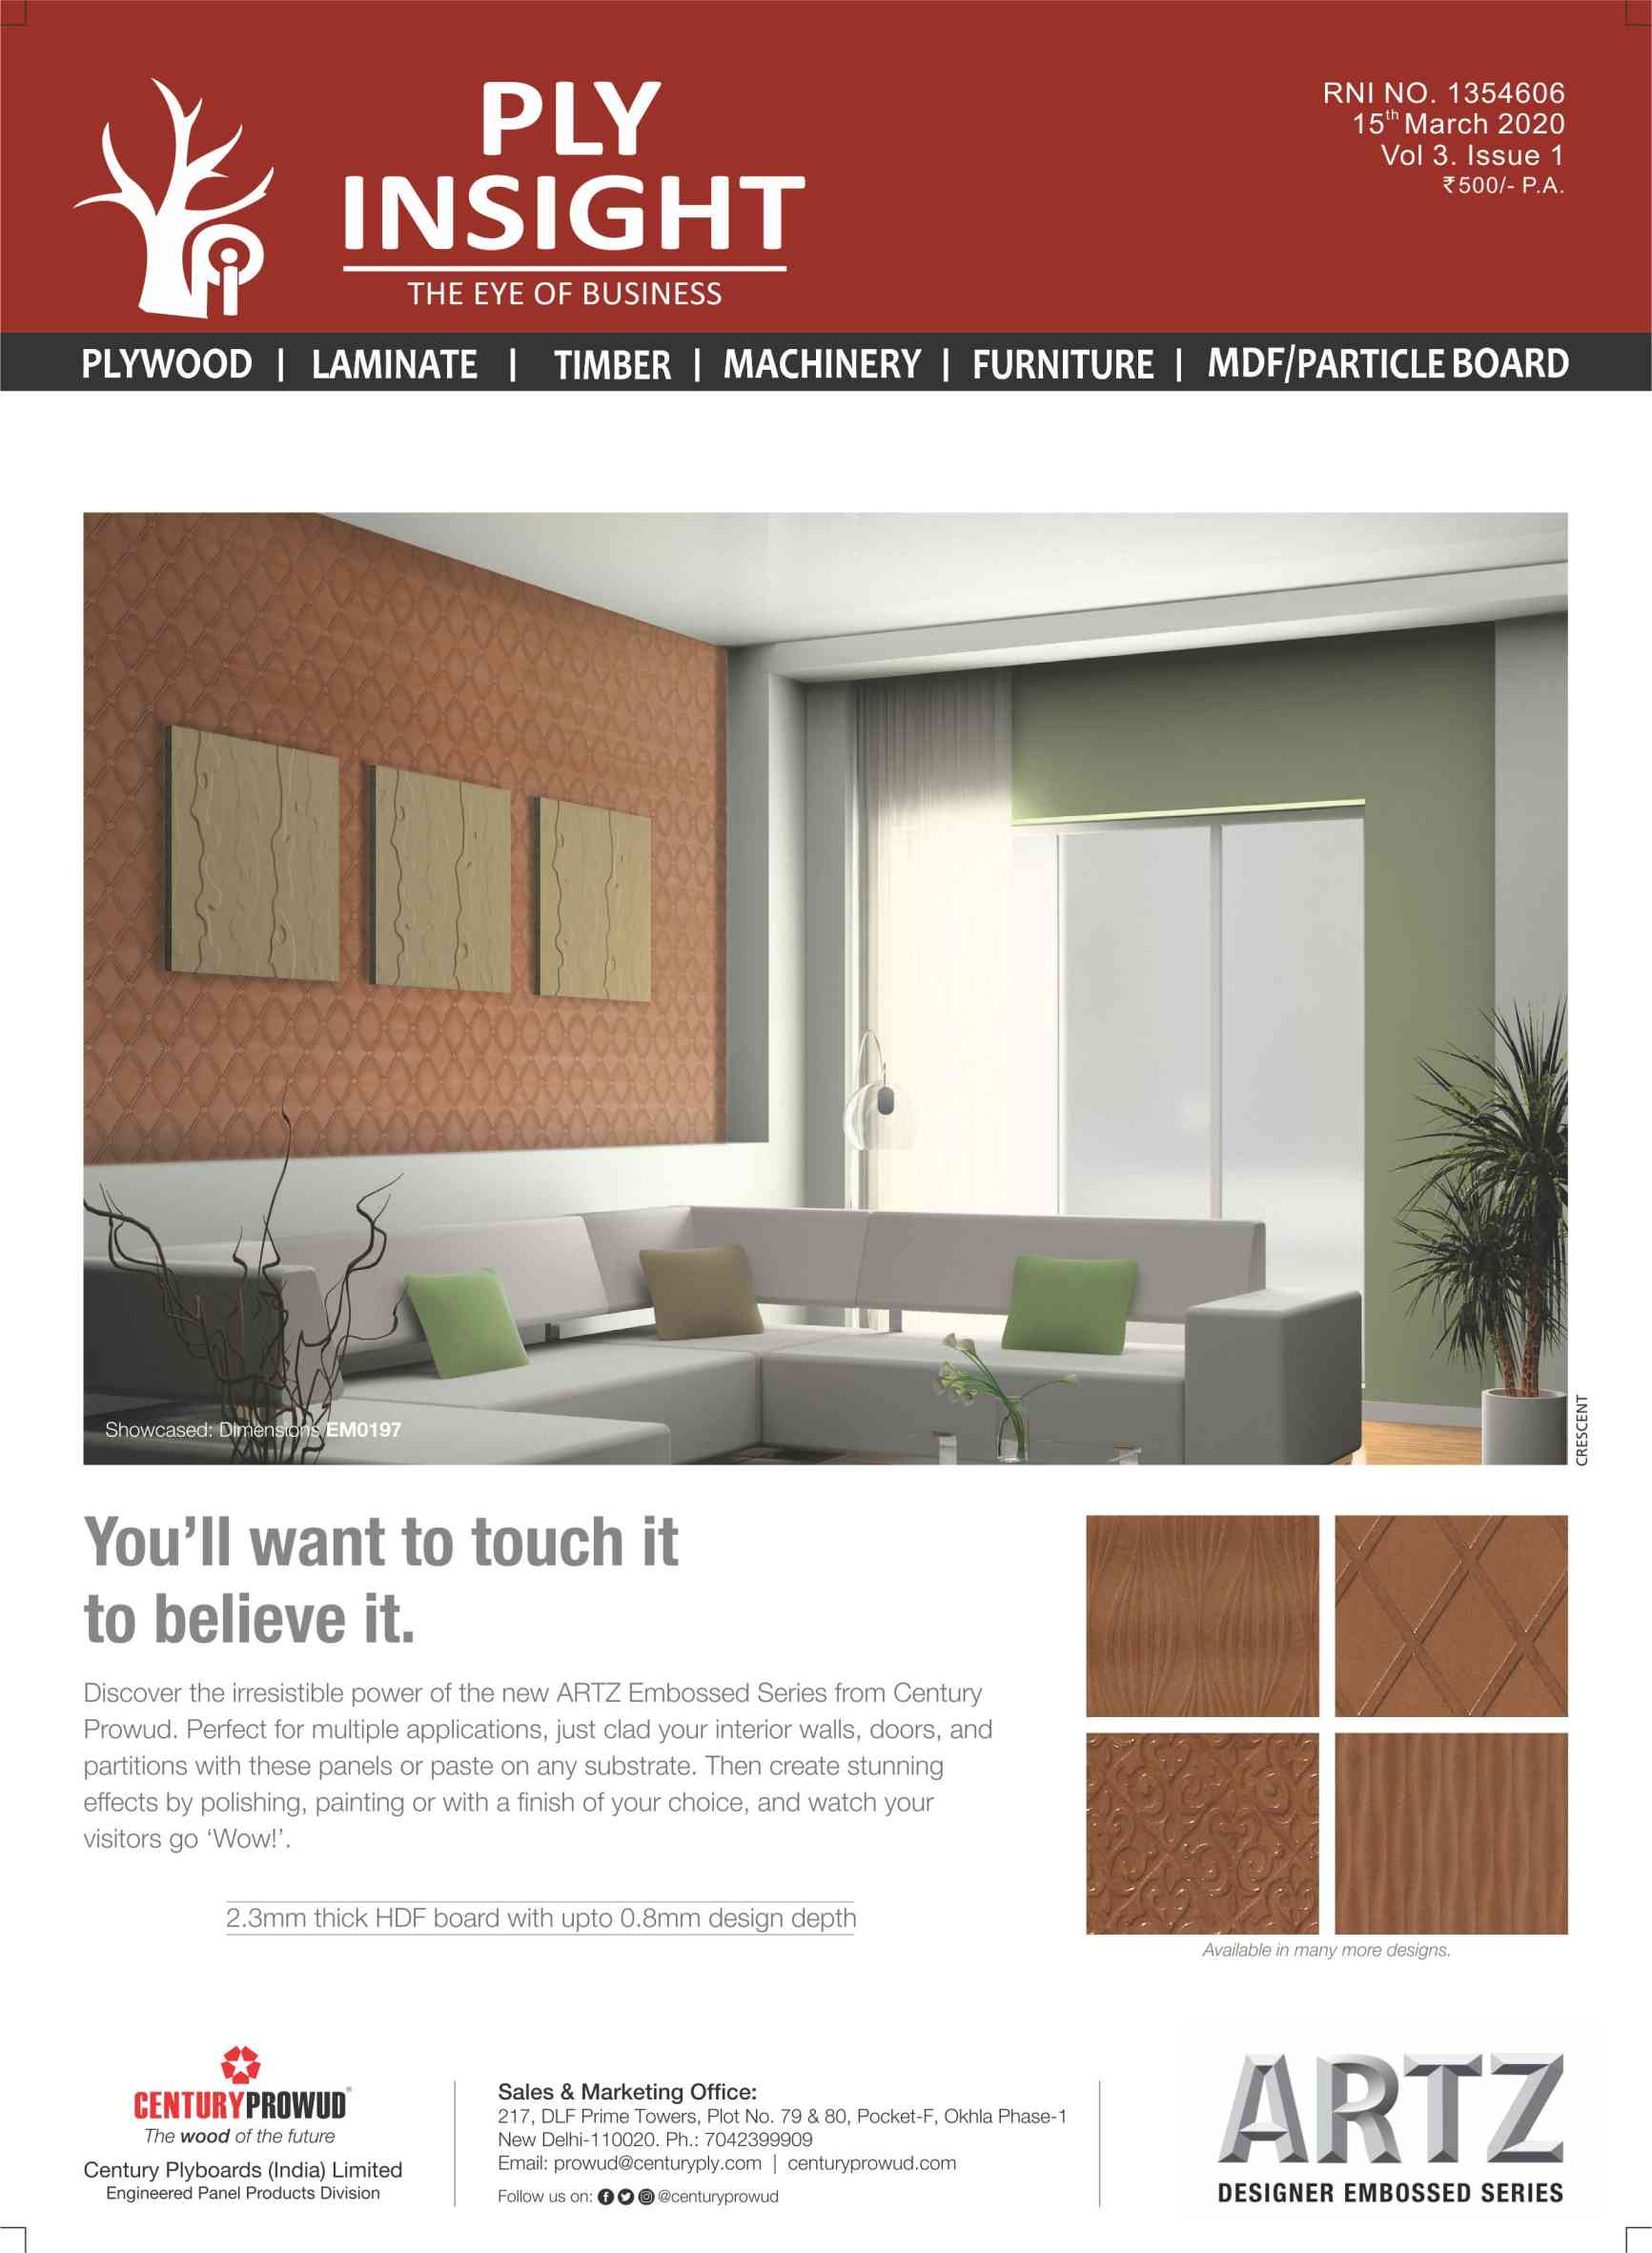 plyinsight march issue